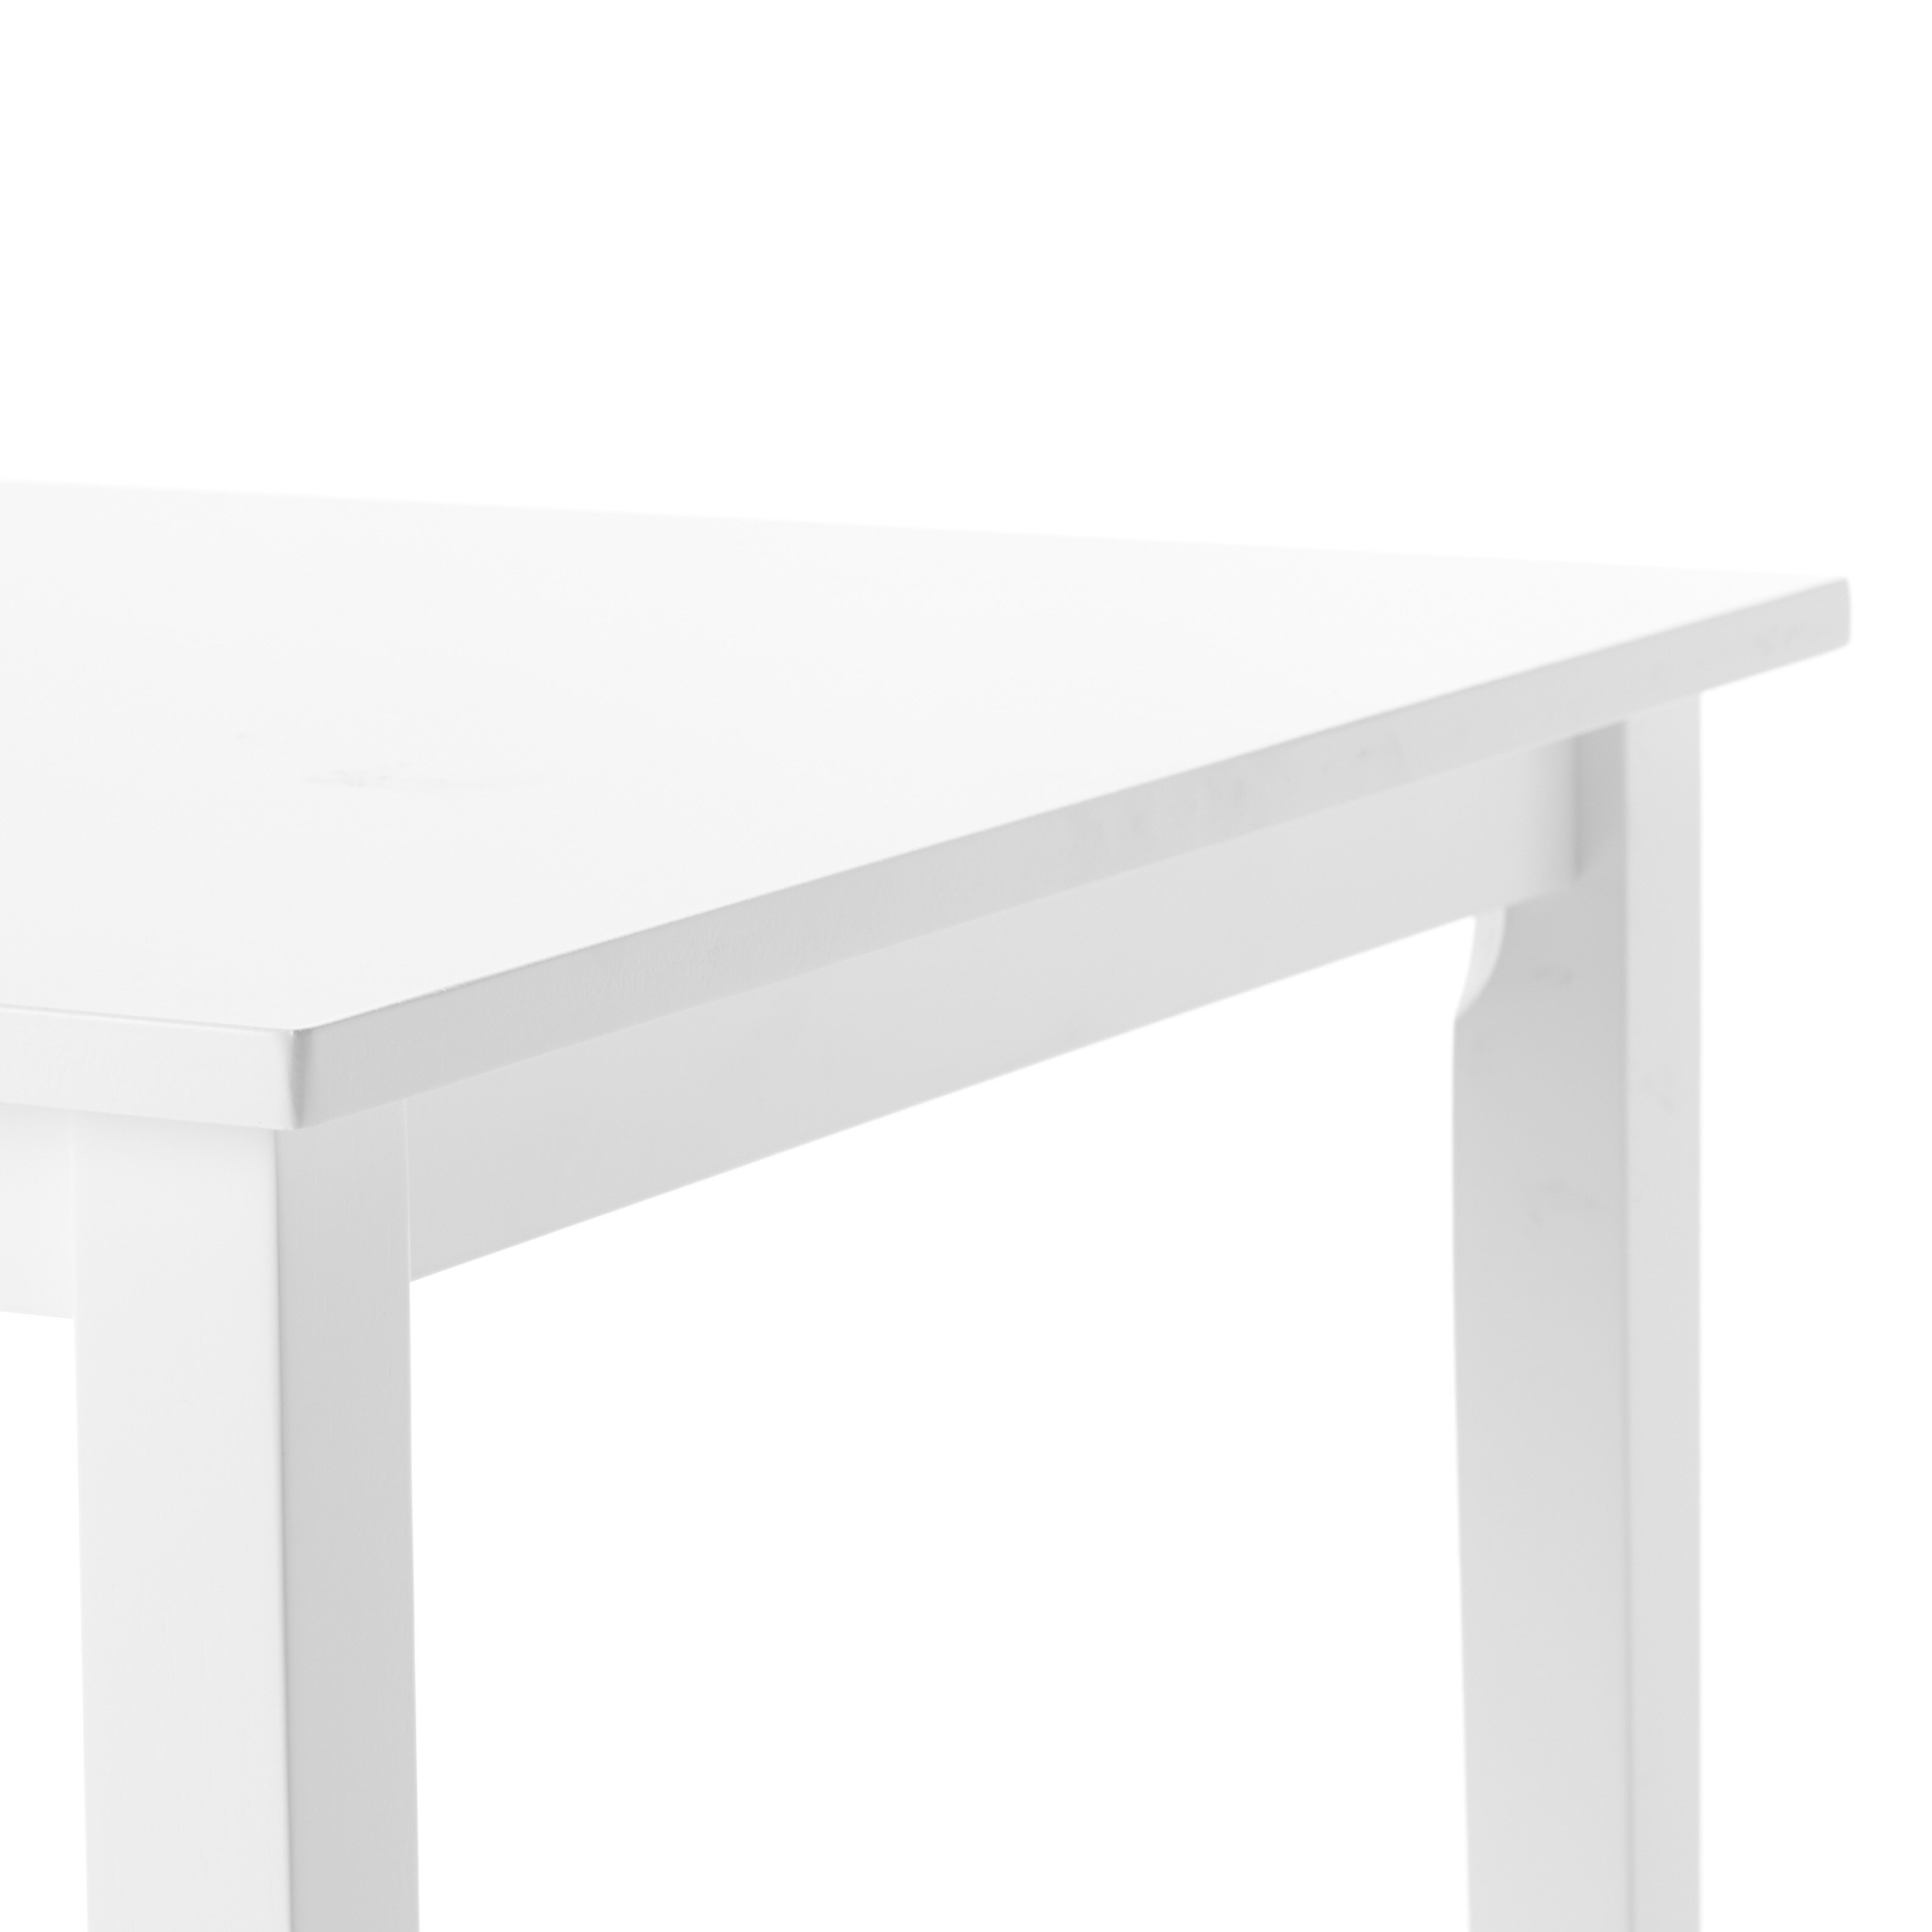 Dining Room Table Pad Protector Images Of Dining Room Table Pads Reviews Patiofurn Home Design Ideas